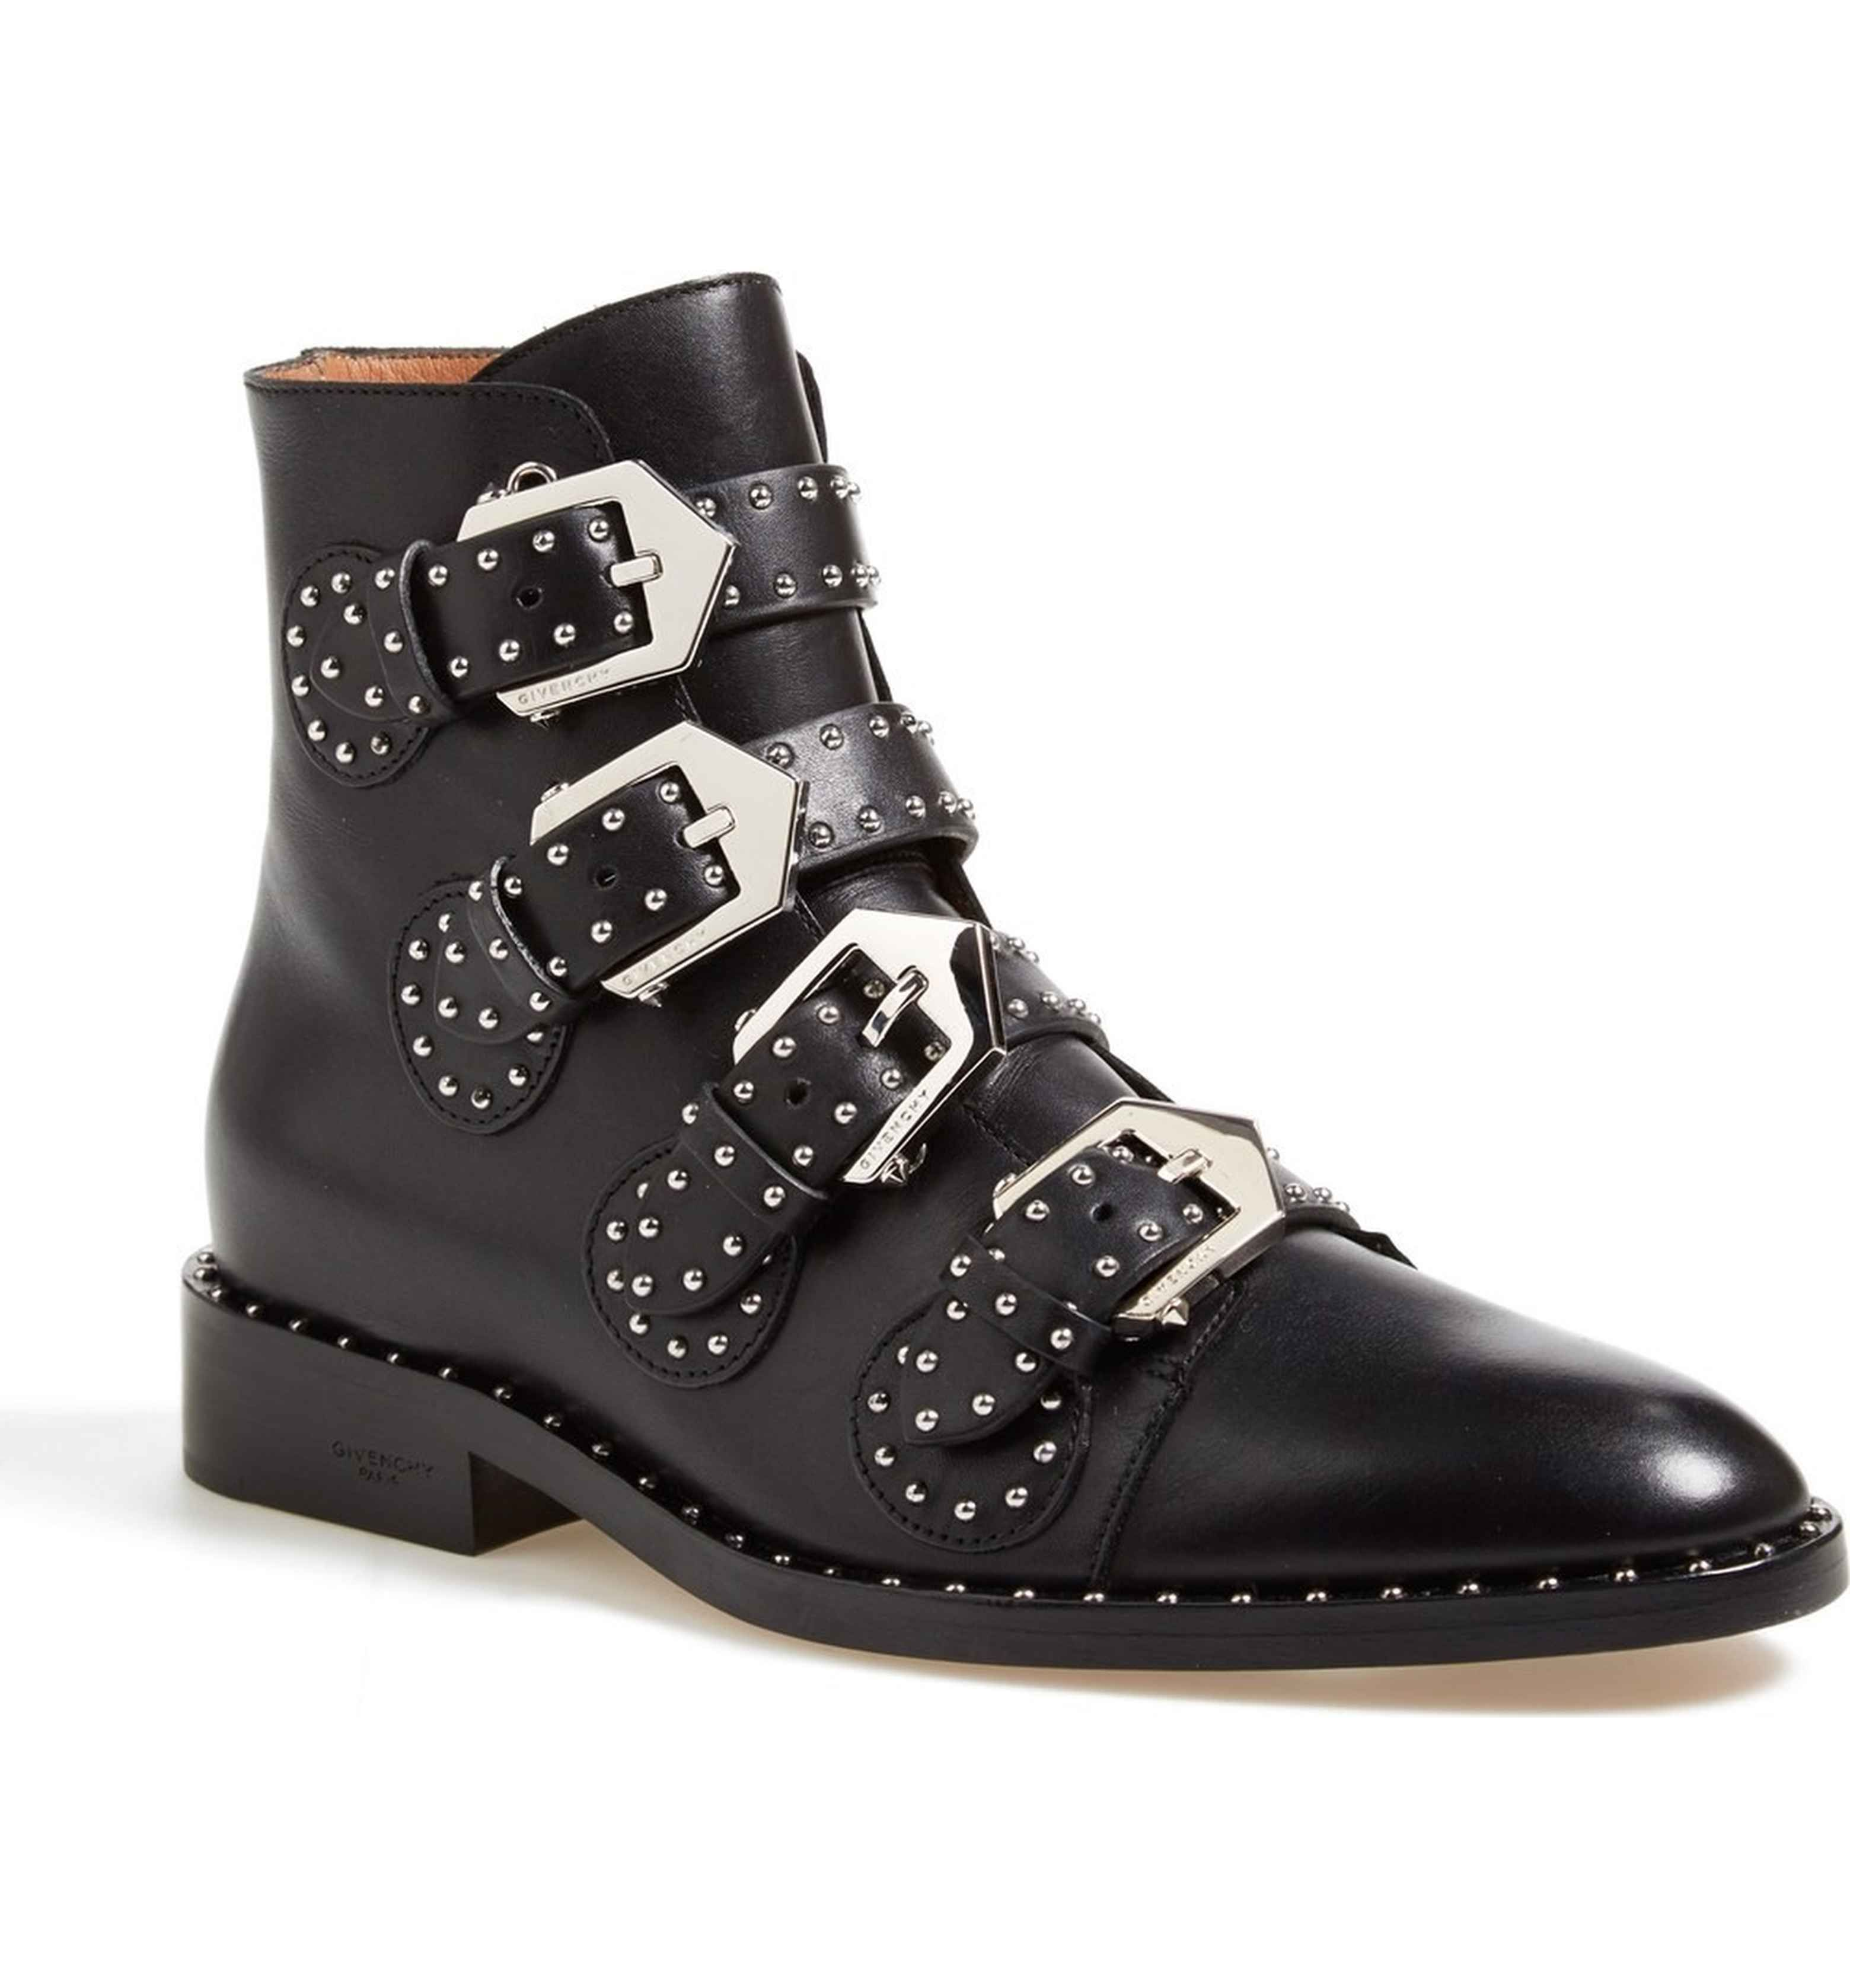 Main Image - Givenchy Buckle Bootie (Women)  7b9fed7350